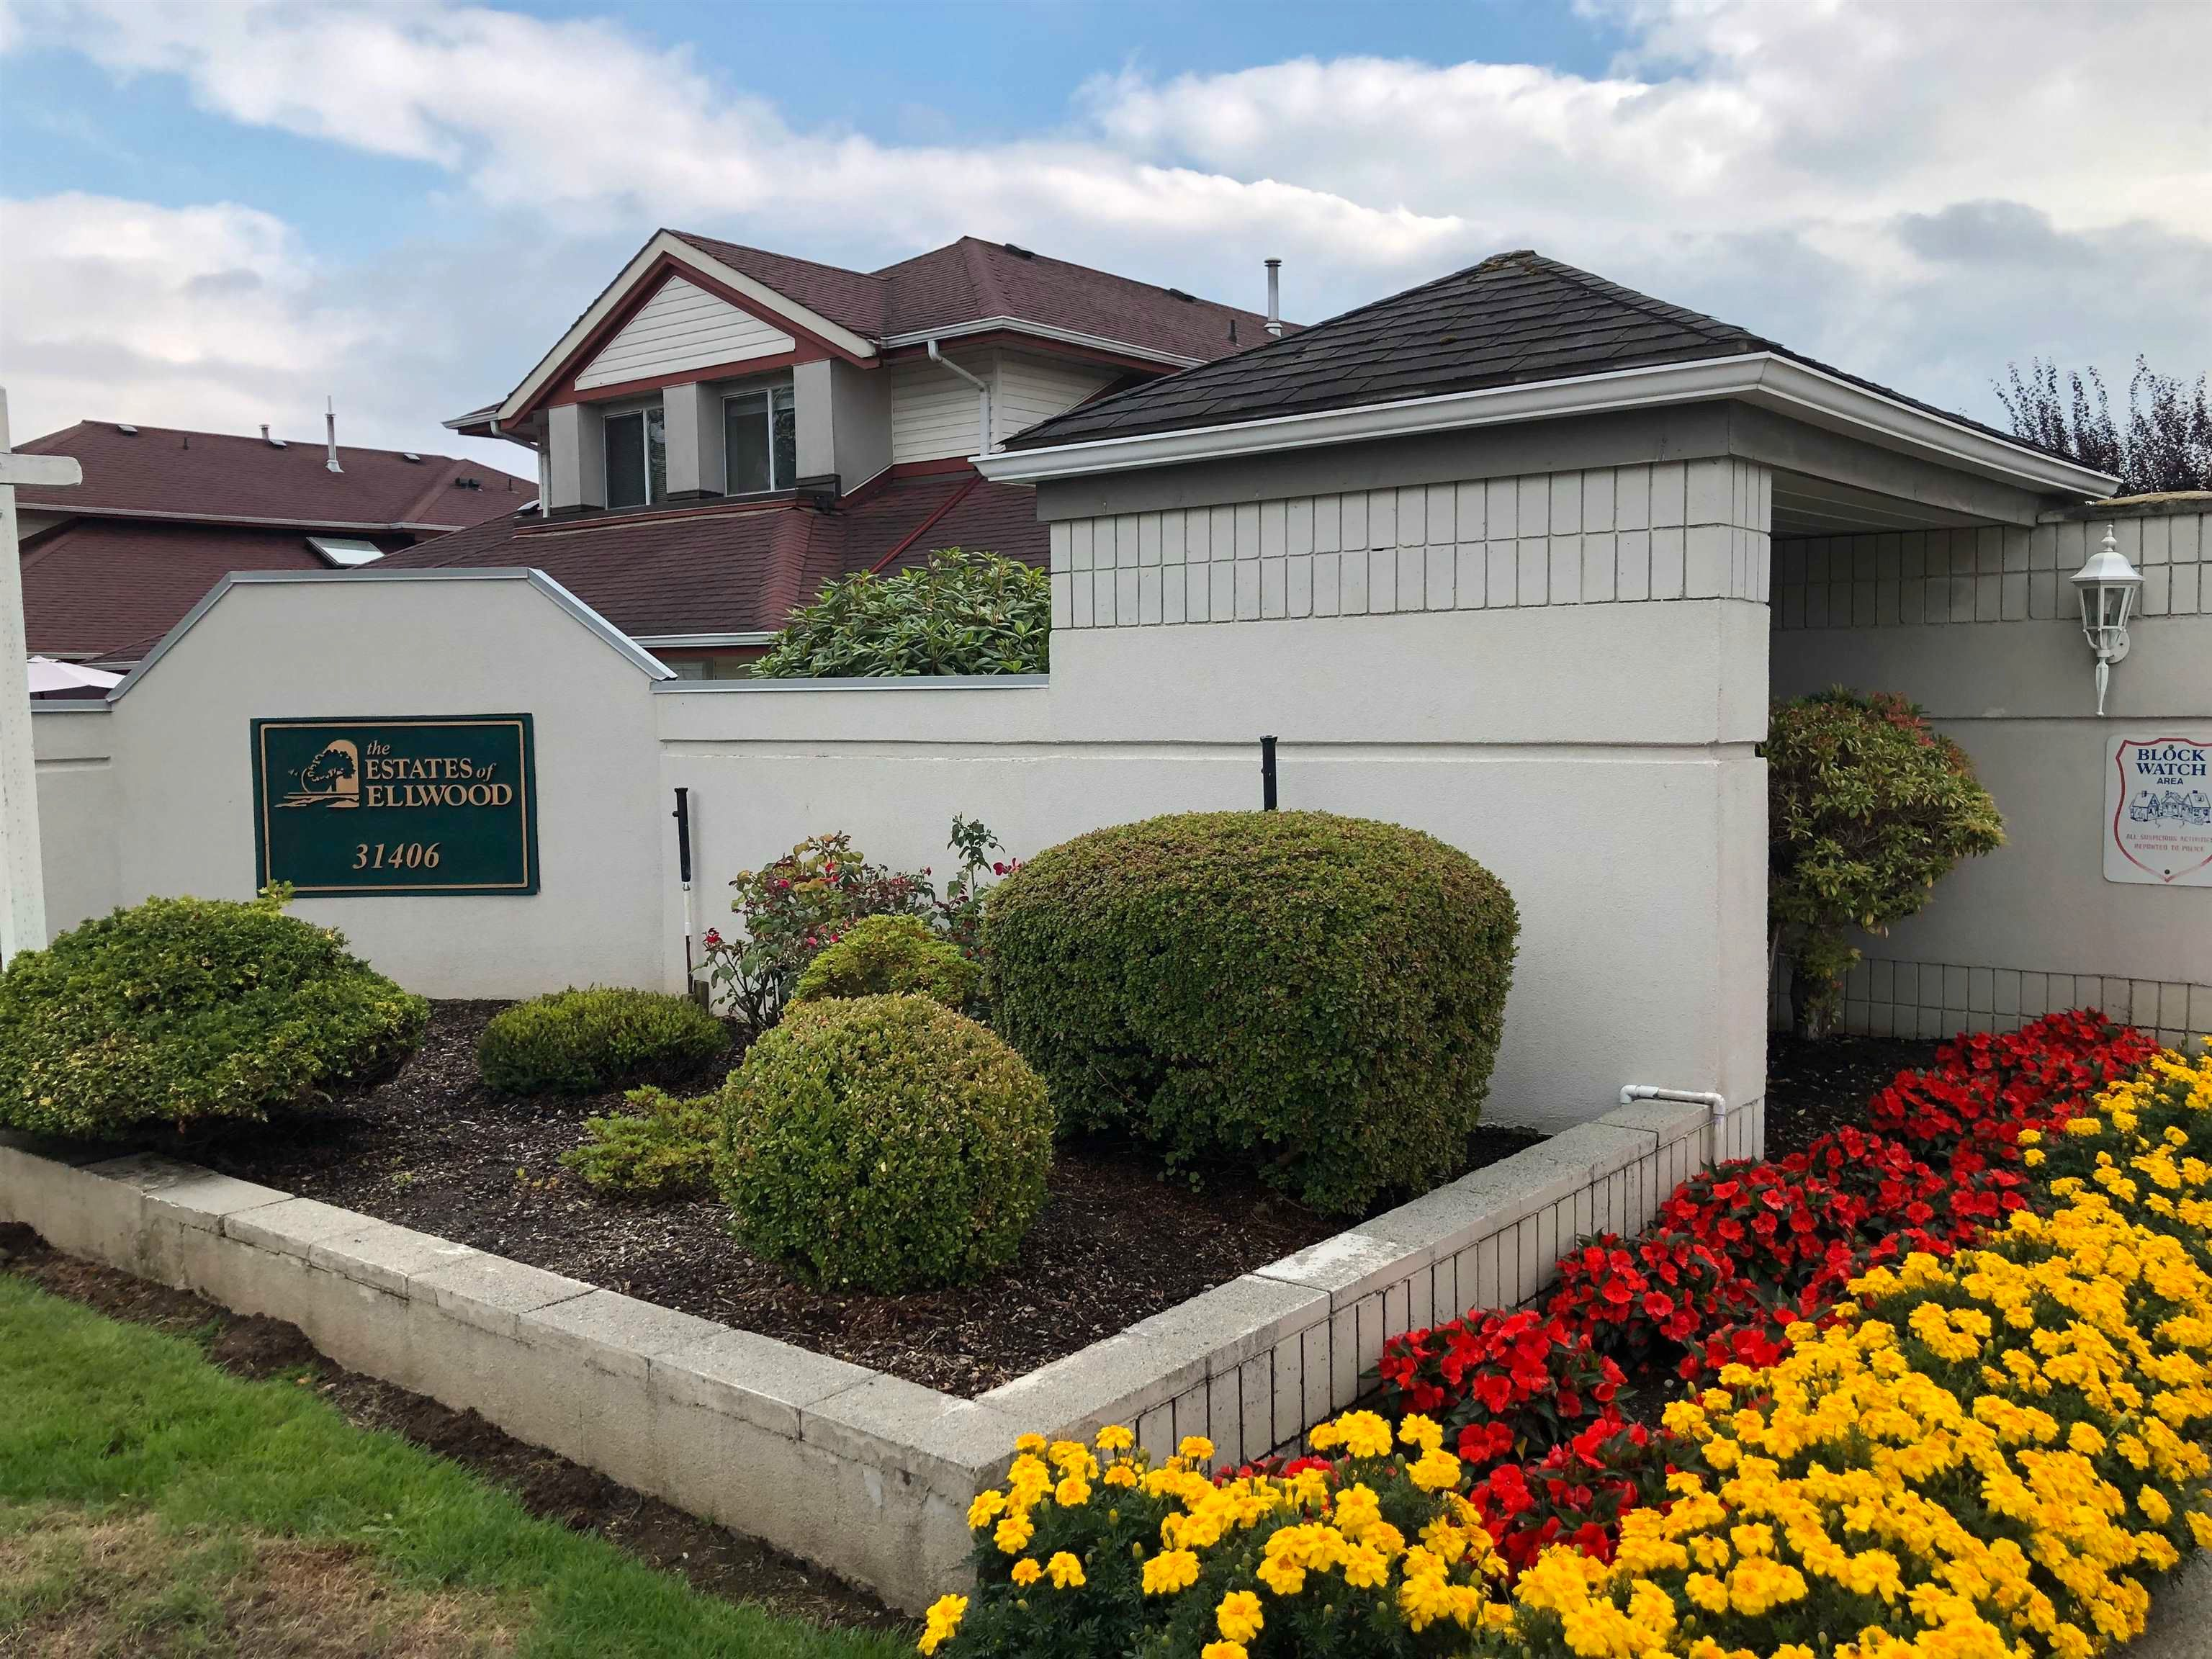 """Main Photo: 28 31406 UPPER MACLURE Road in Abbotsford: Abbotsford West Townhouse for sale in """"Ellwood Estate"""" : MLS®# R2612561"""